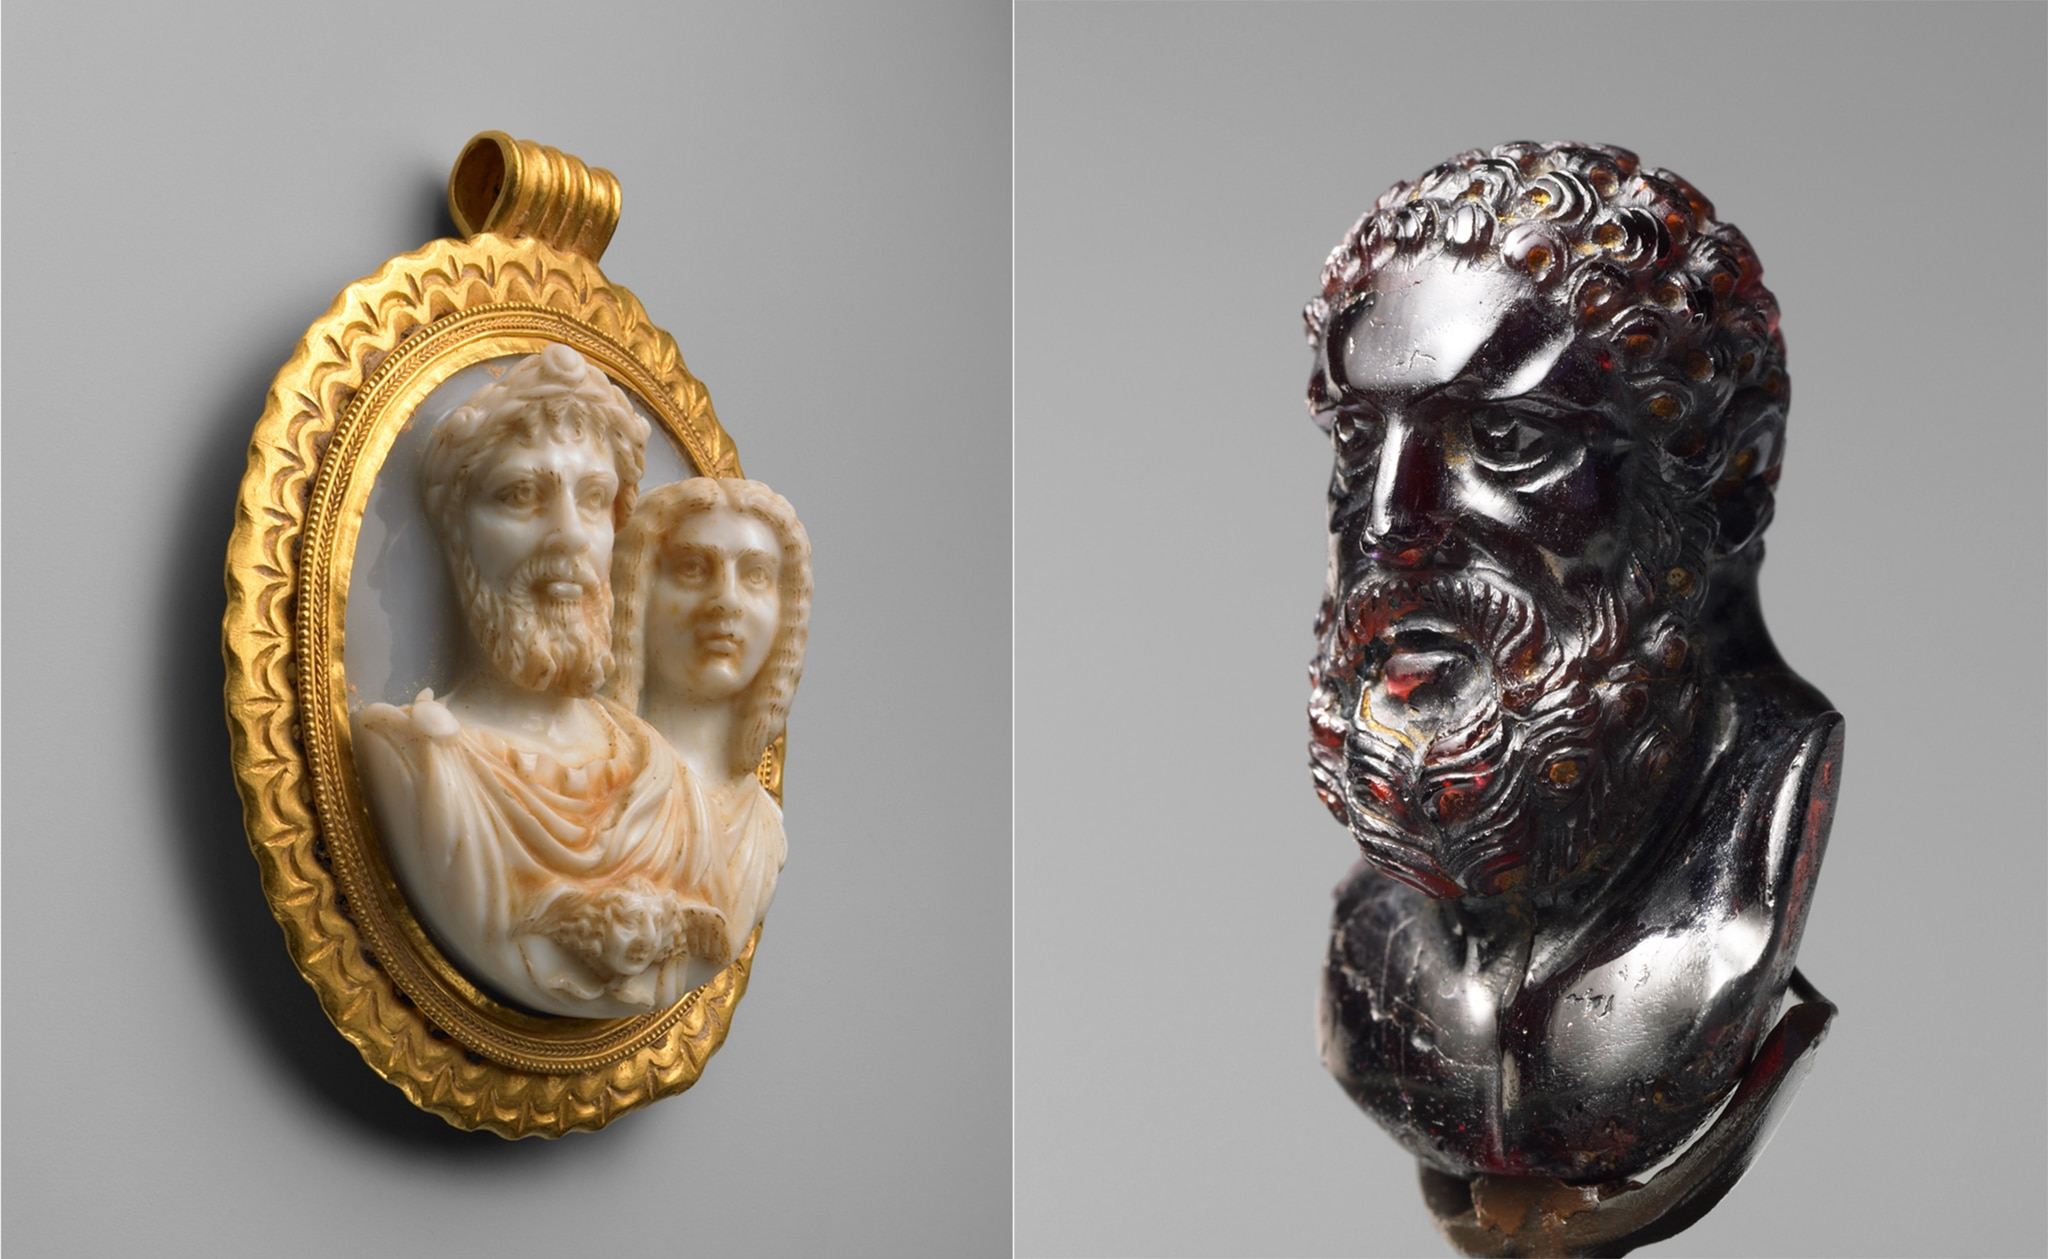 Pendant and bust (© Bruce M. White/Toledo Museum of Art)